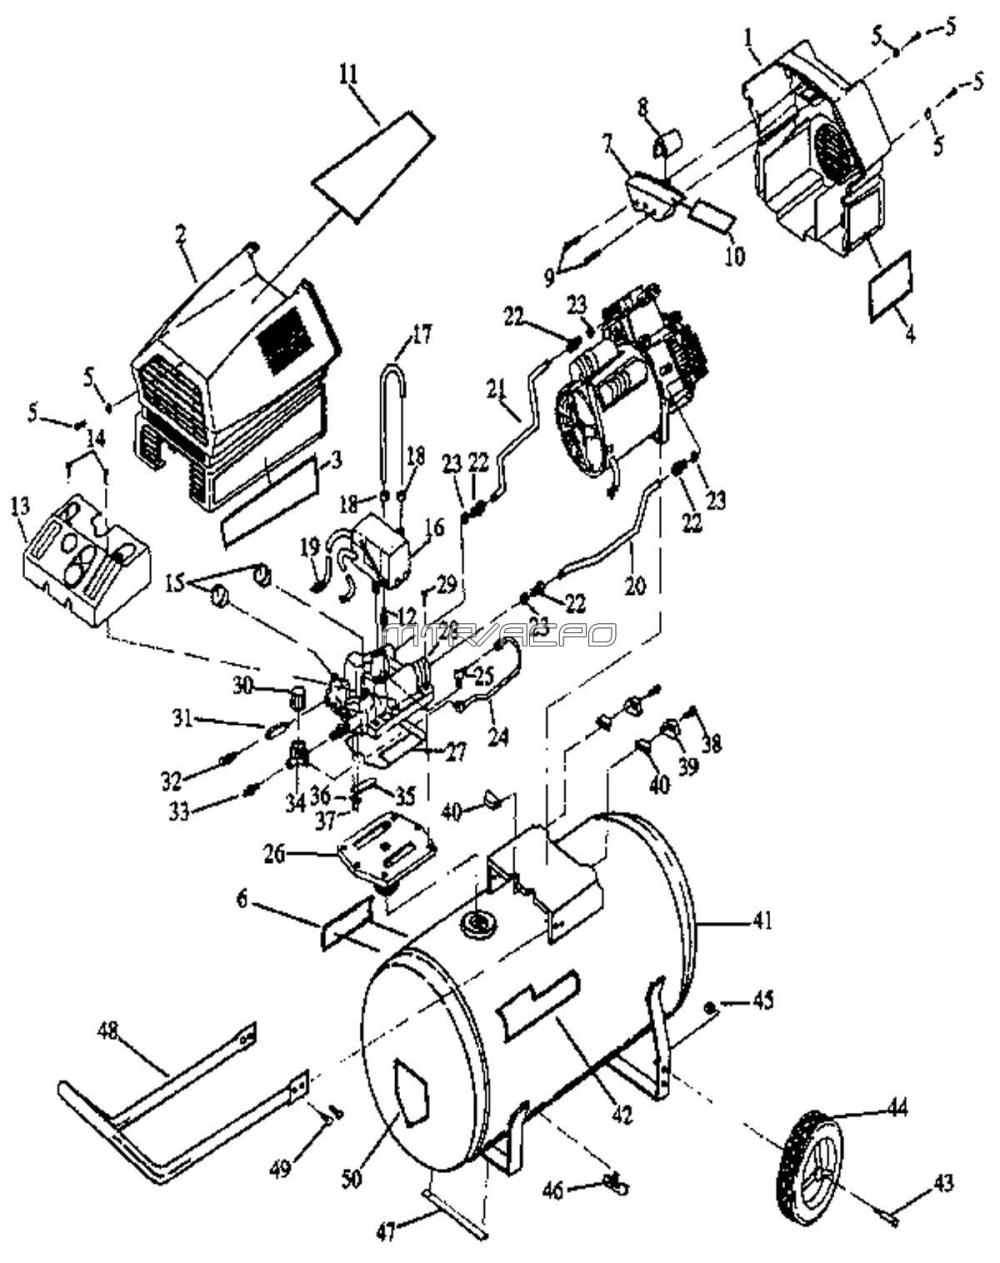 medium resolution of 919 152930 craftsman parts sears craftsman 919 152930 air compressor parts sears 1 hp air sears air compressor wiring diagram